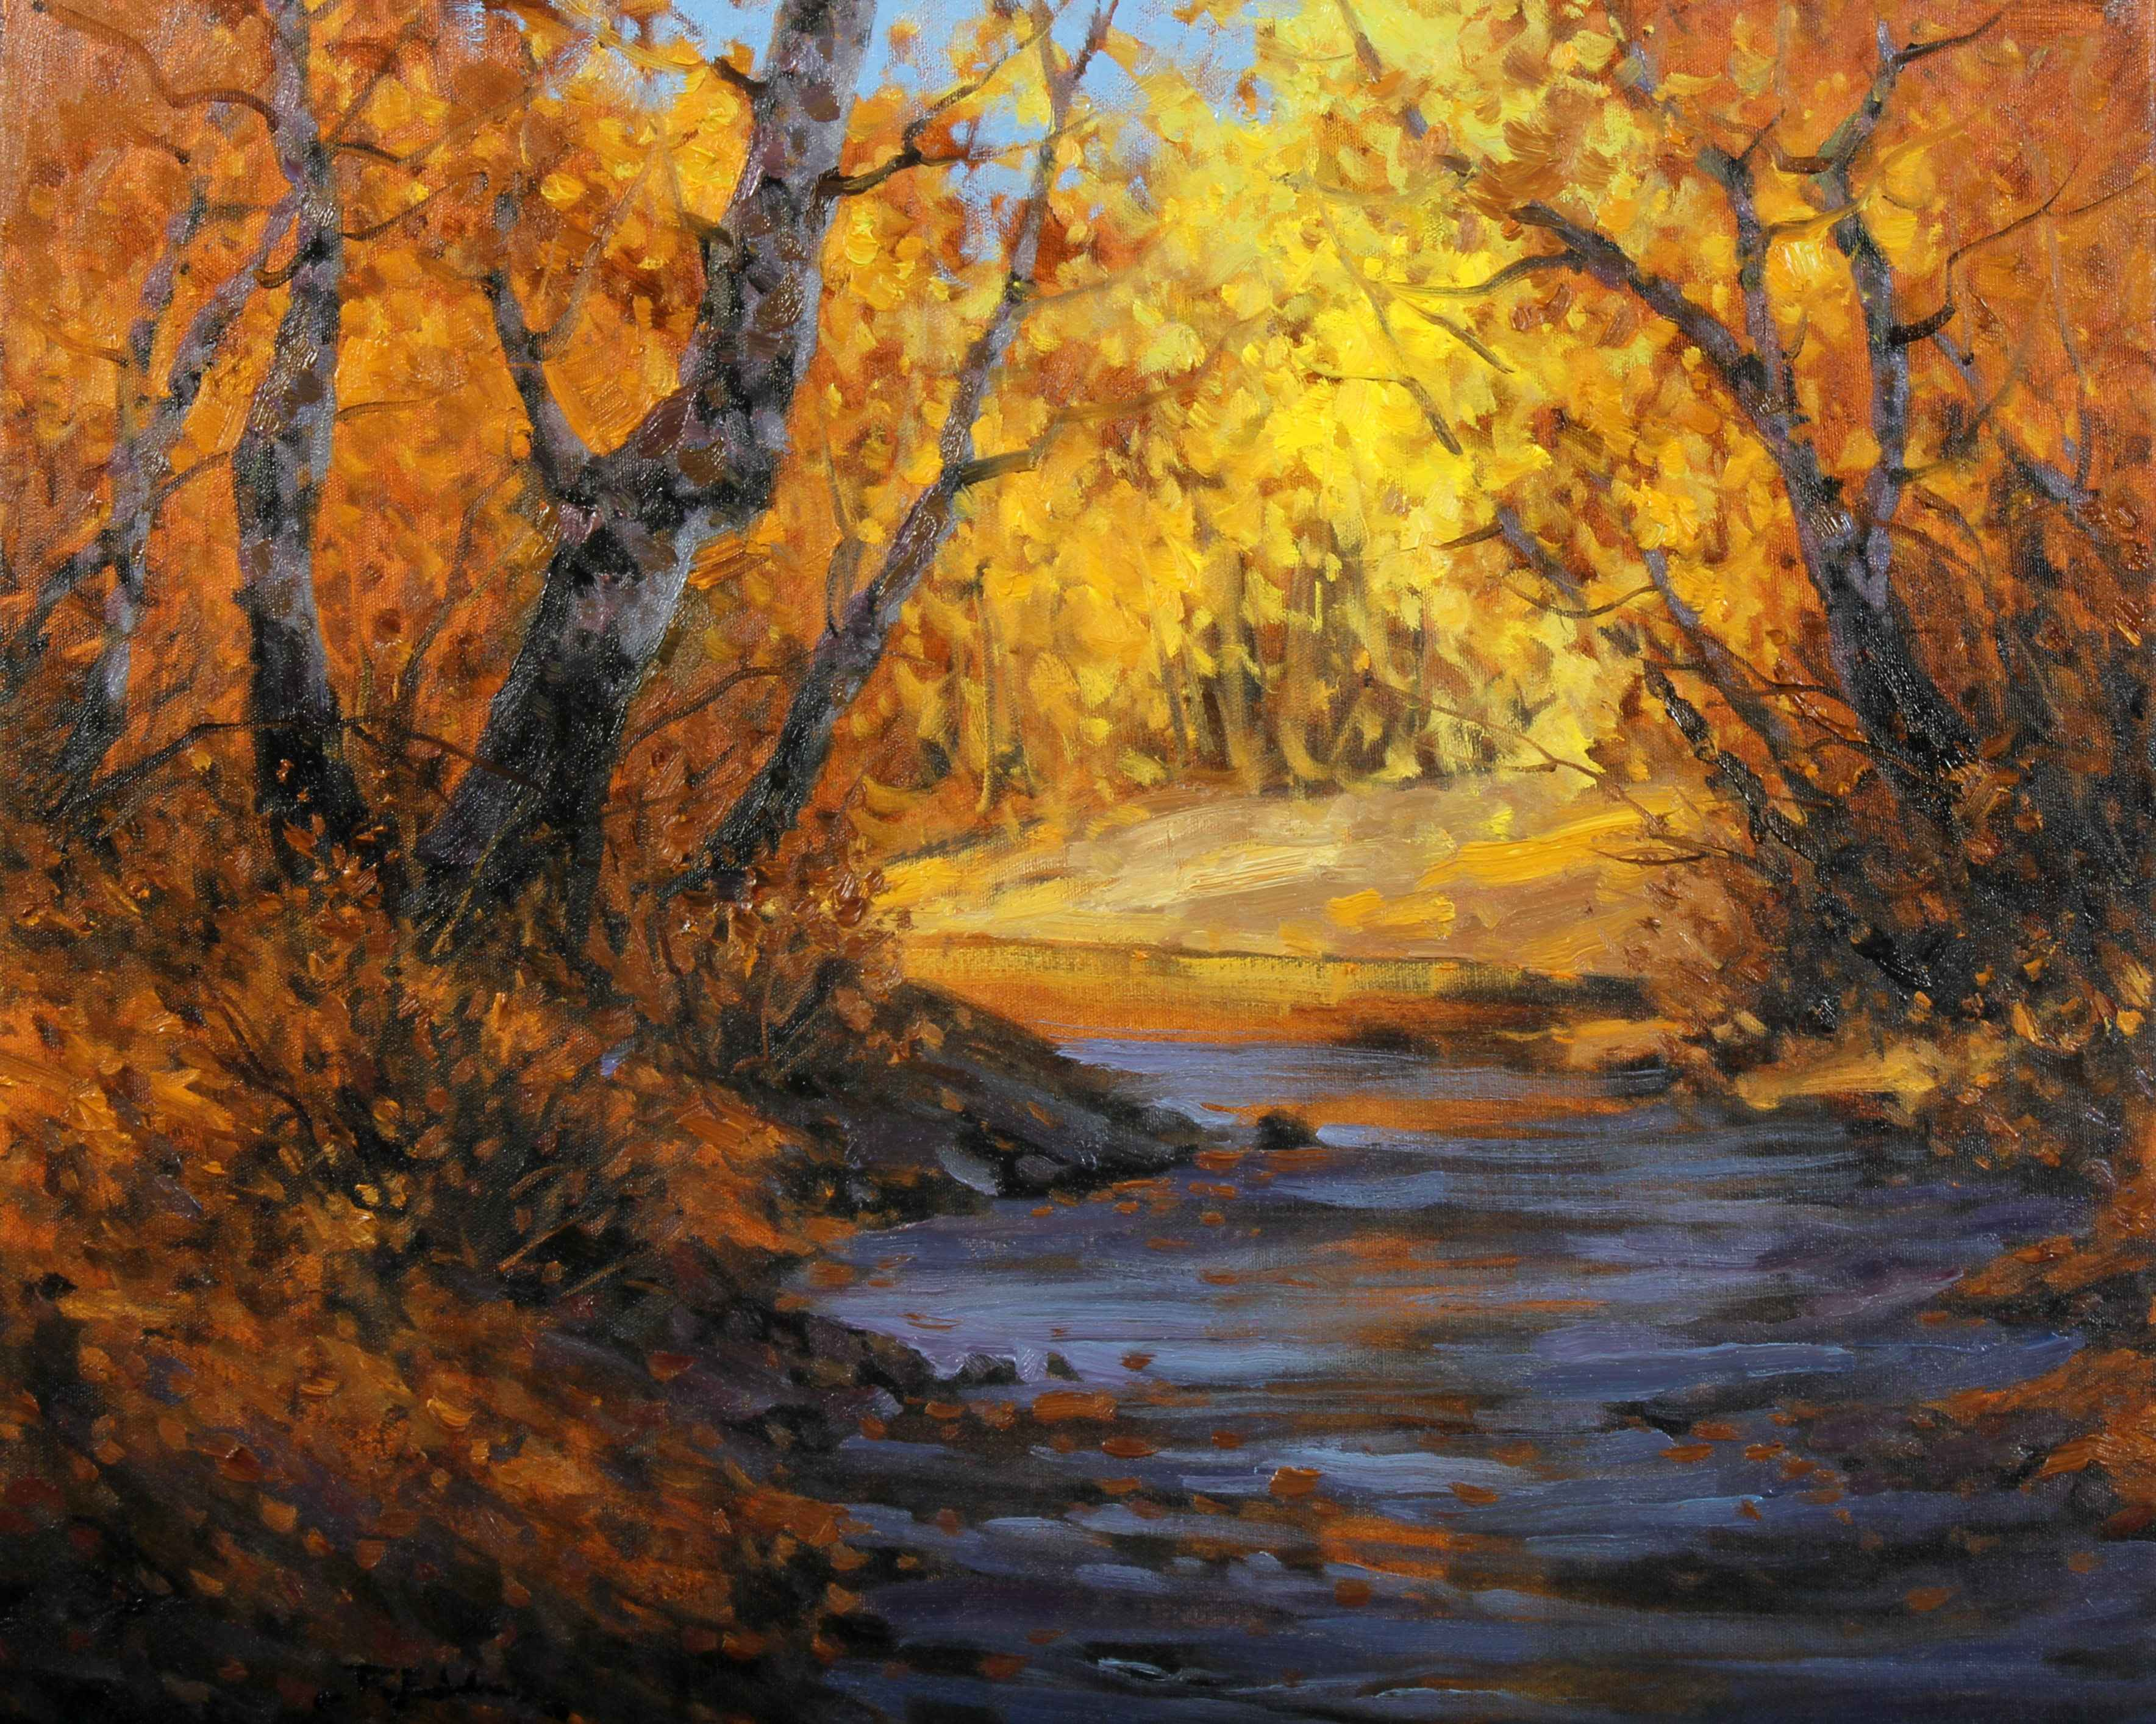 Through the Shadows by  Robert E. Wood - Masterpiece Online